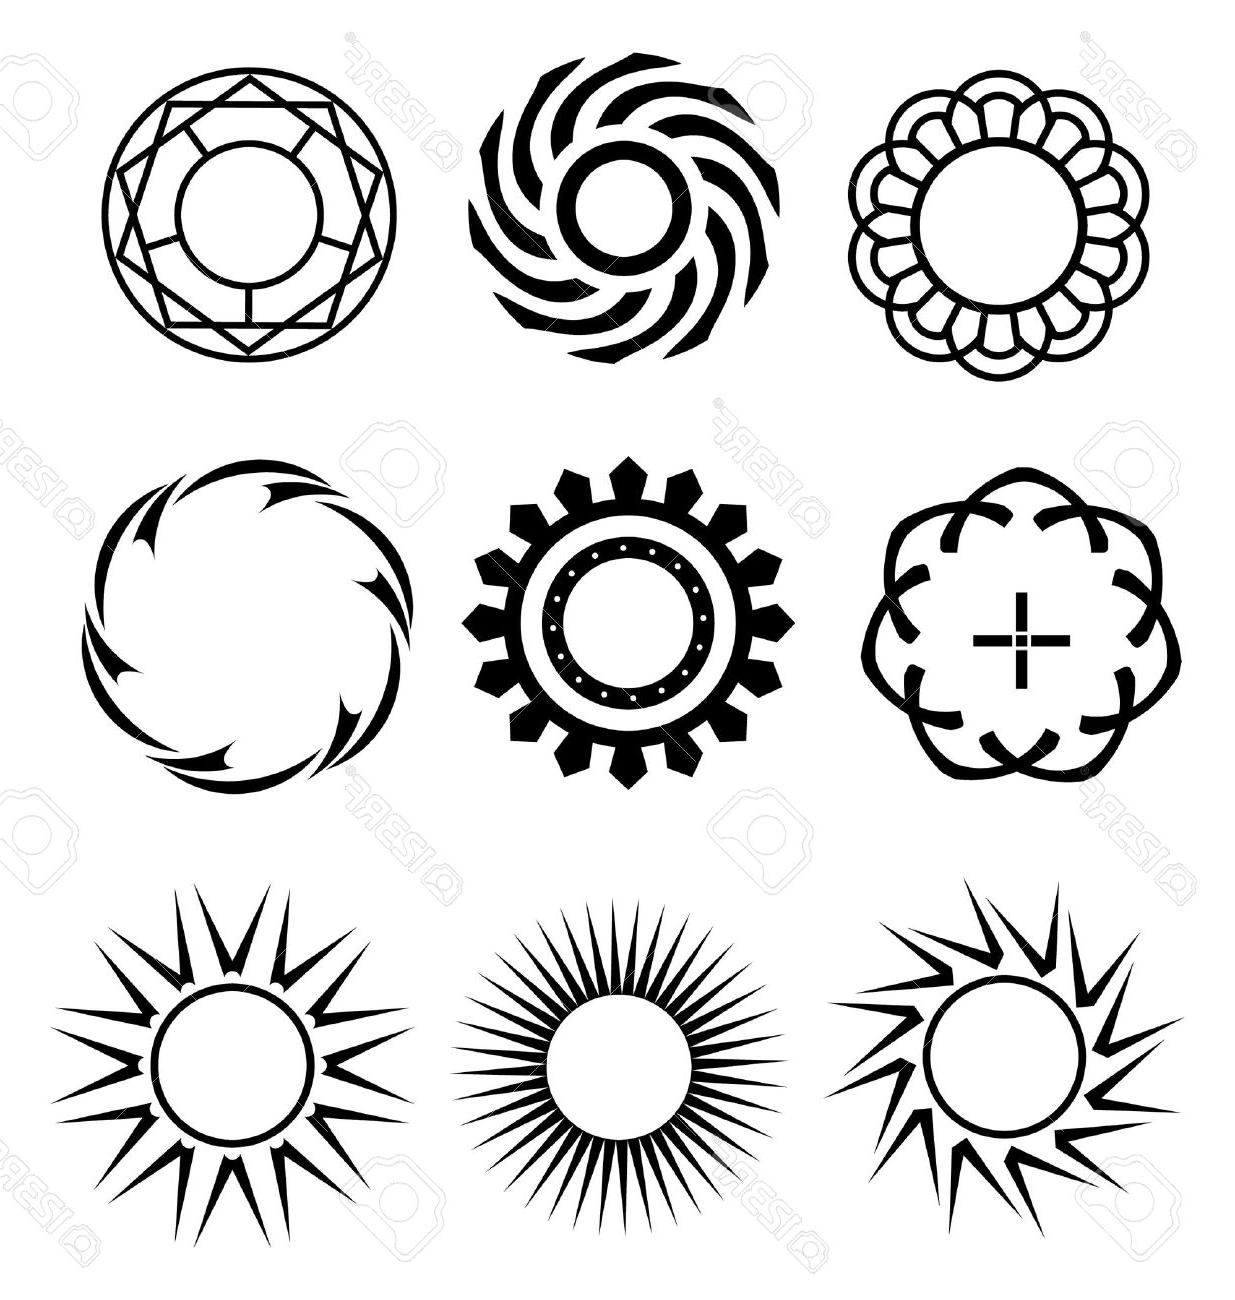 Circle designs clipart jpg freeuse HD Circle Designs Vector Design » Free Vector Art, Images, Graphics ... jpg freeuse